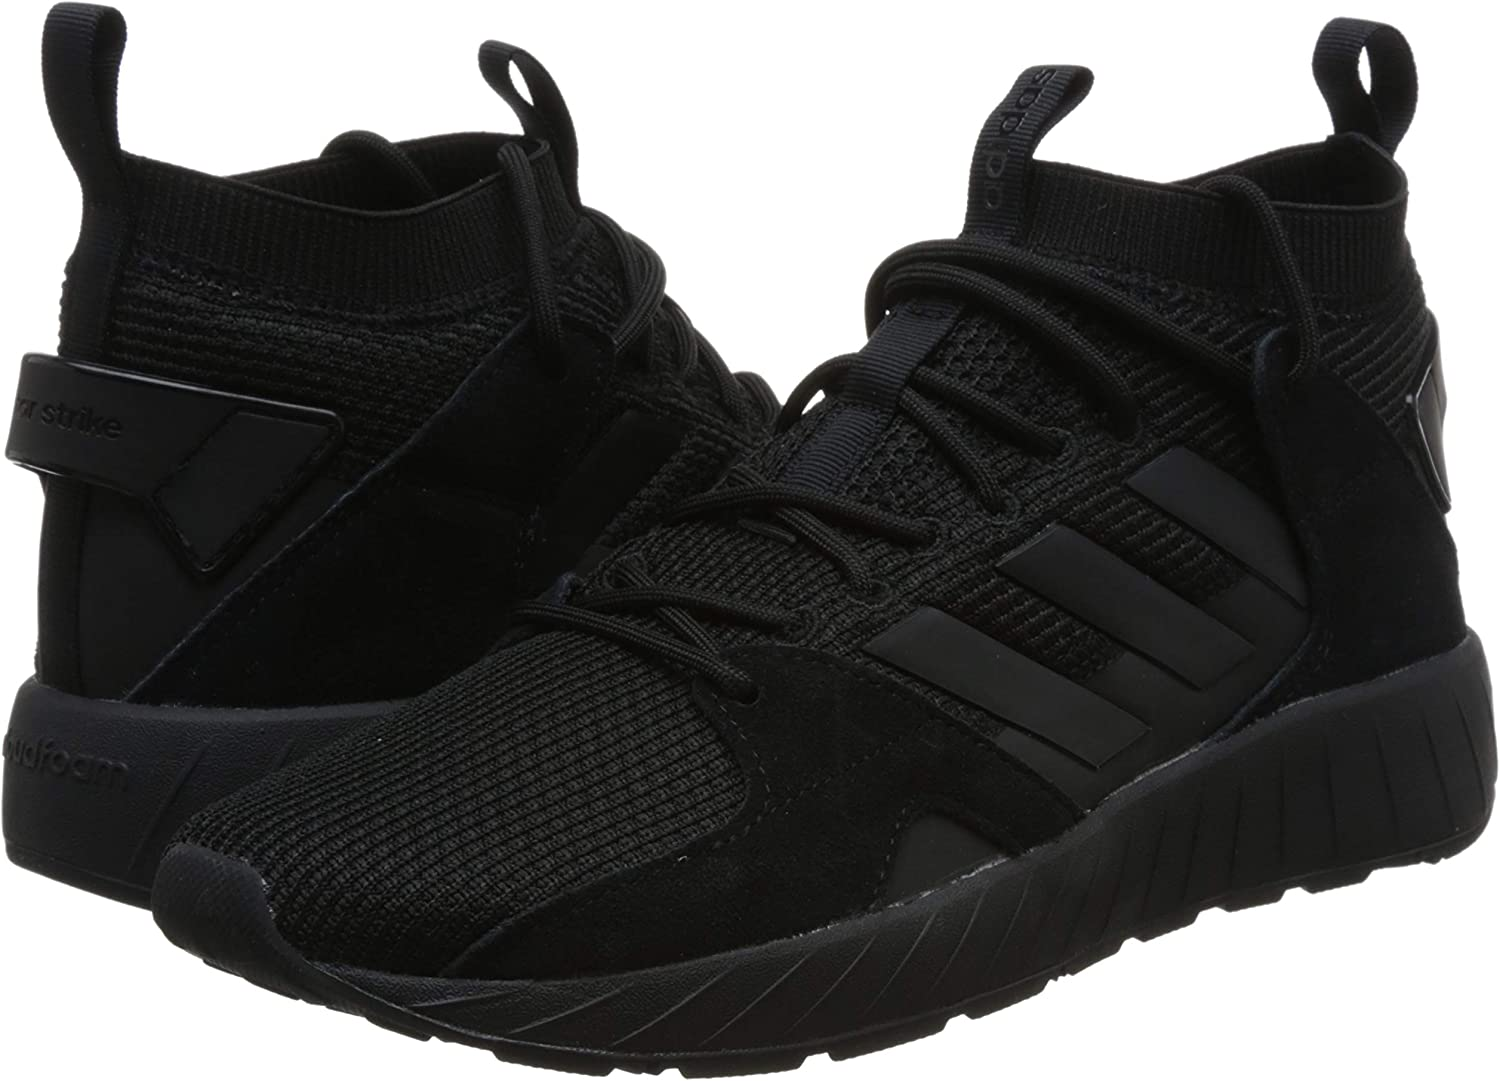 Questarstrike Mid Fitness Shoes